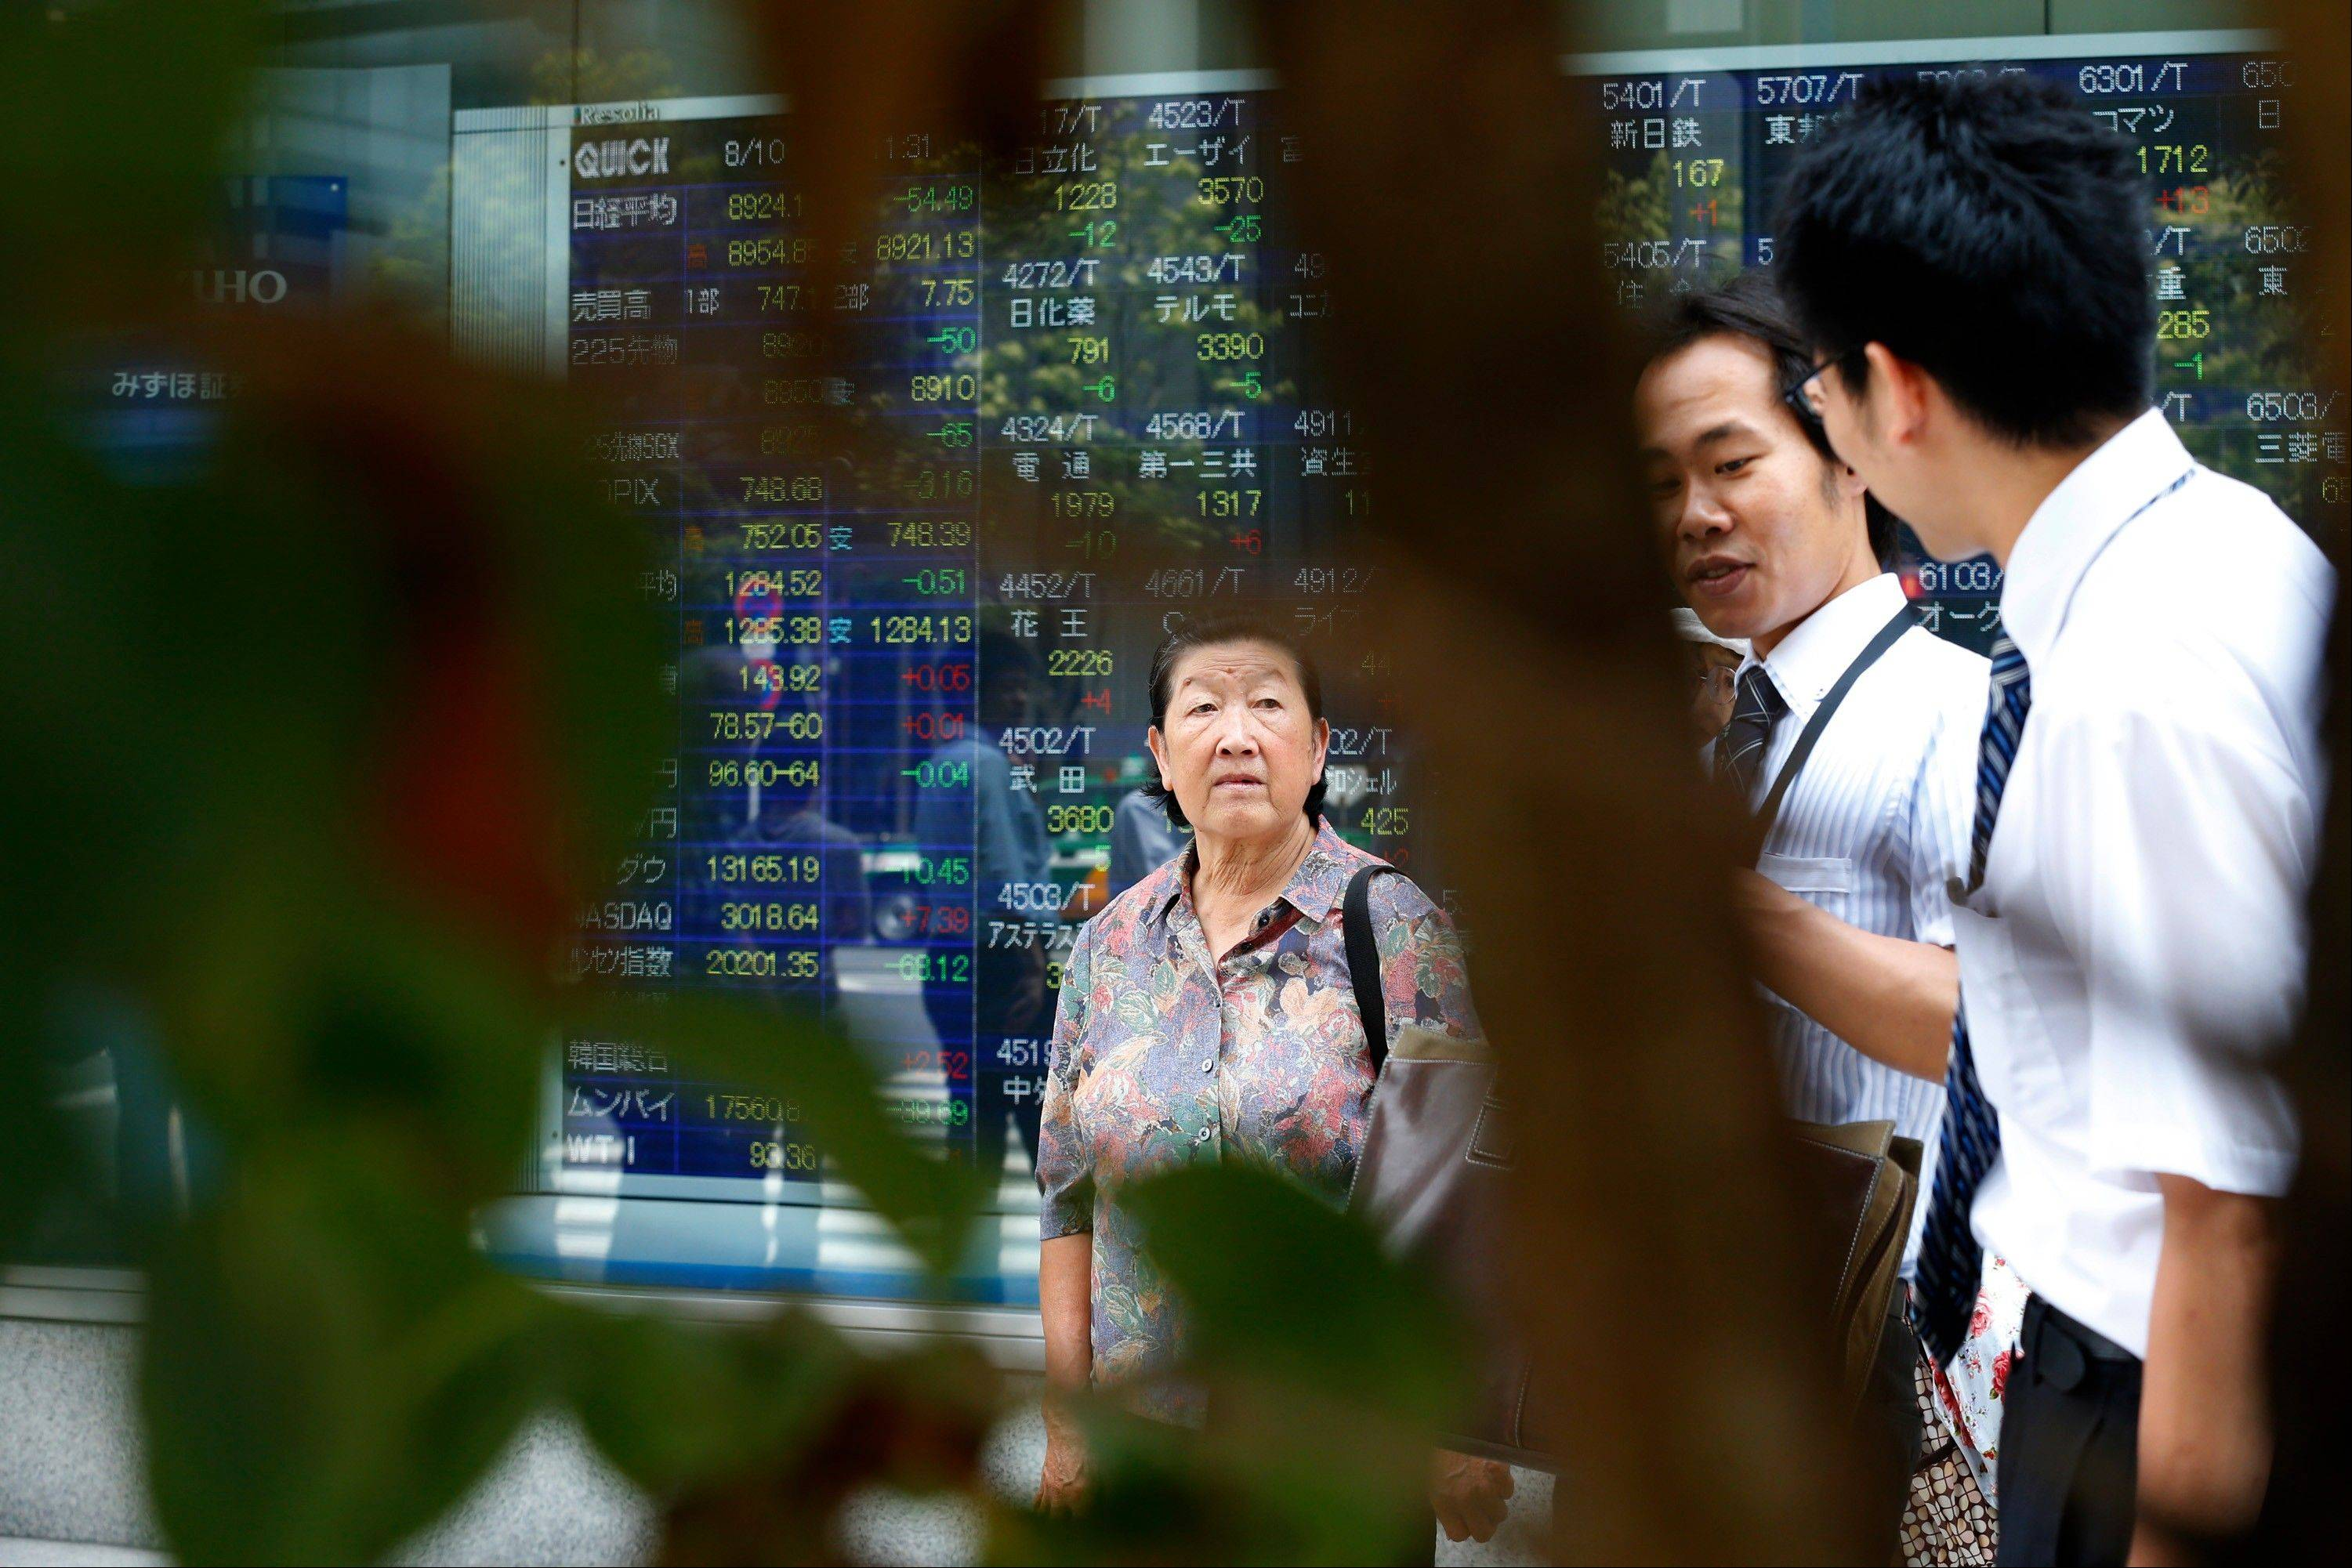 People walk past an electronic stock indicator in Tokyo, Friday.